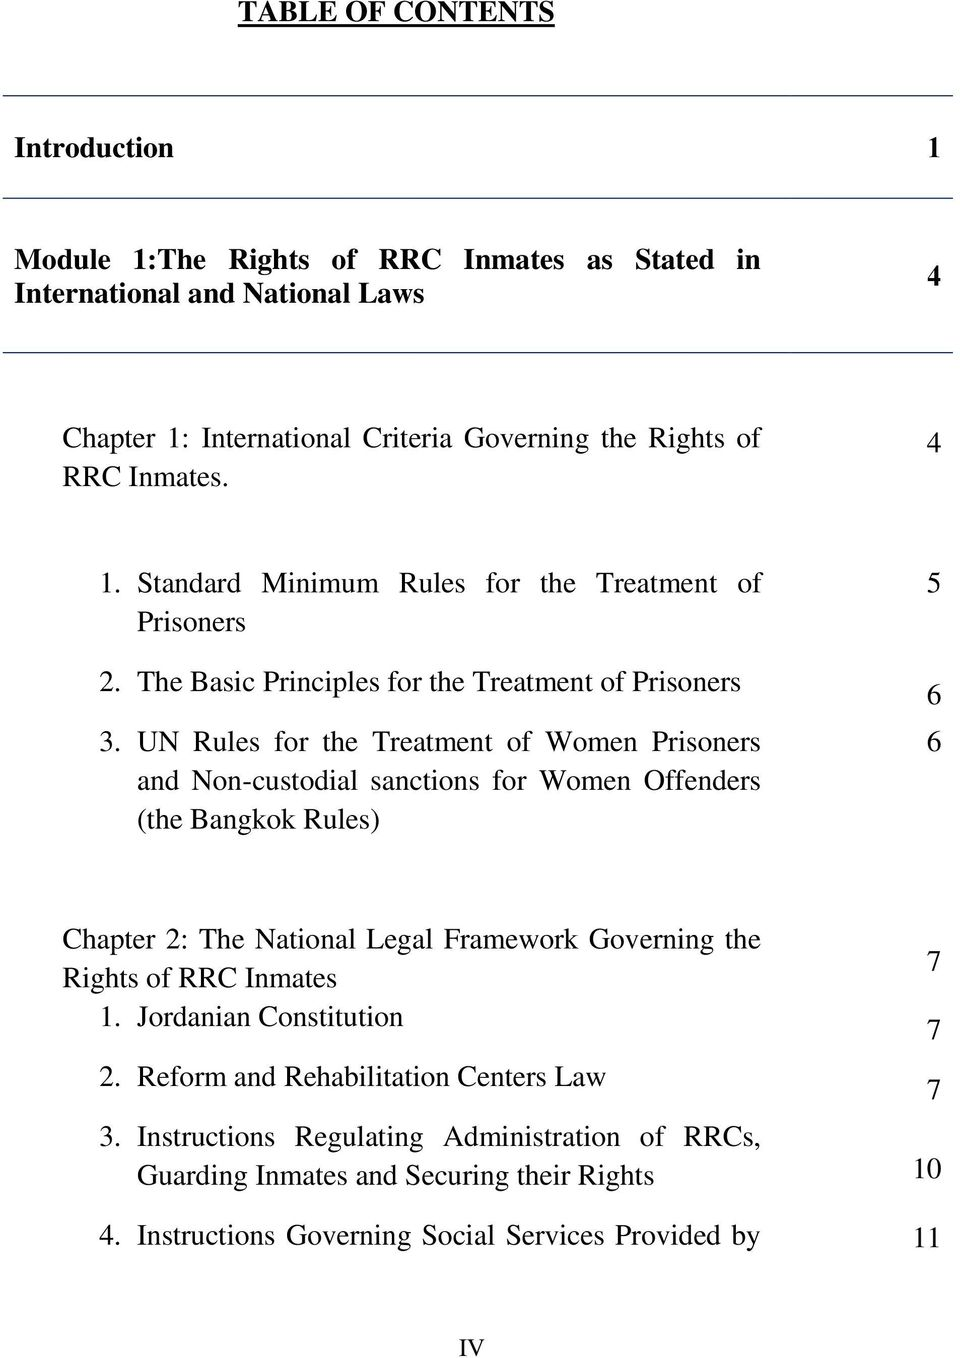 UN Rules for the Treatment of Women Prisoners and Non-custodial sanctions for Women Offenders (the Bangkok Rules) 5 6 6 Chapter 2: The National Legal Framework Governing the Rights